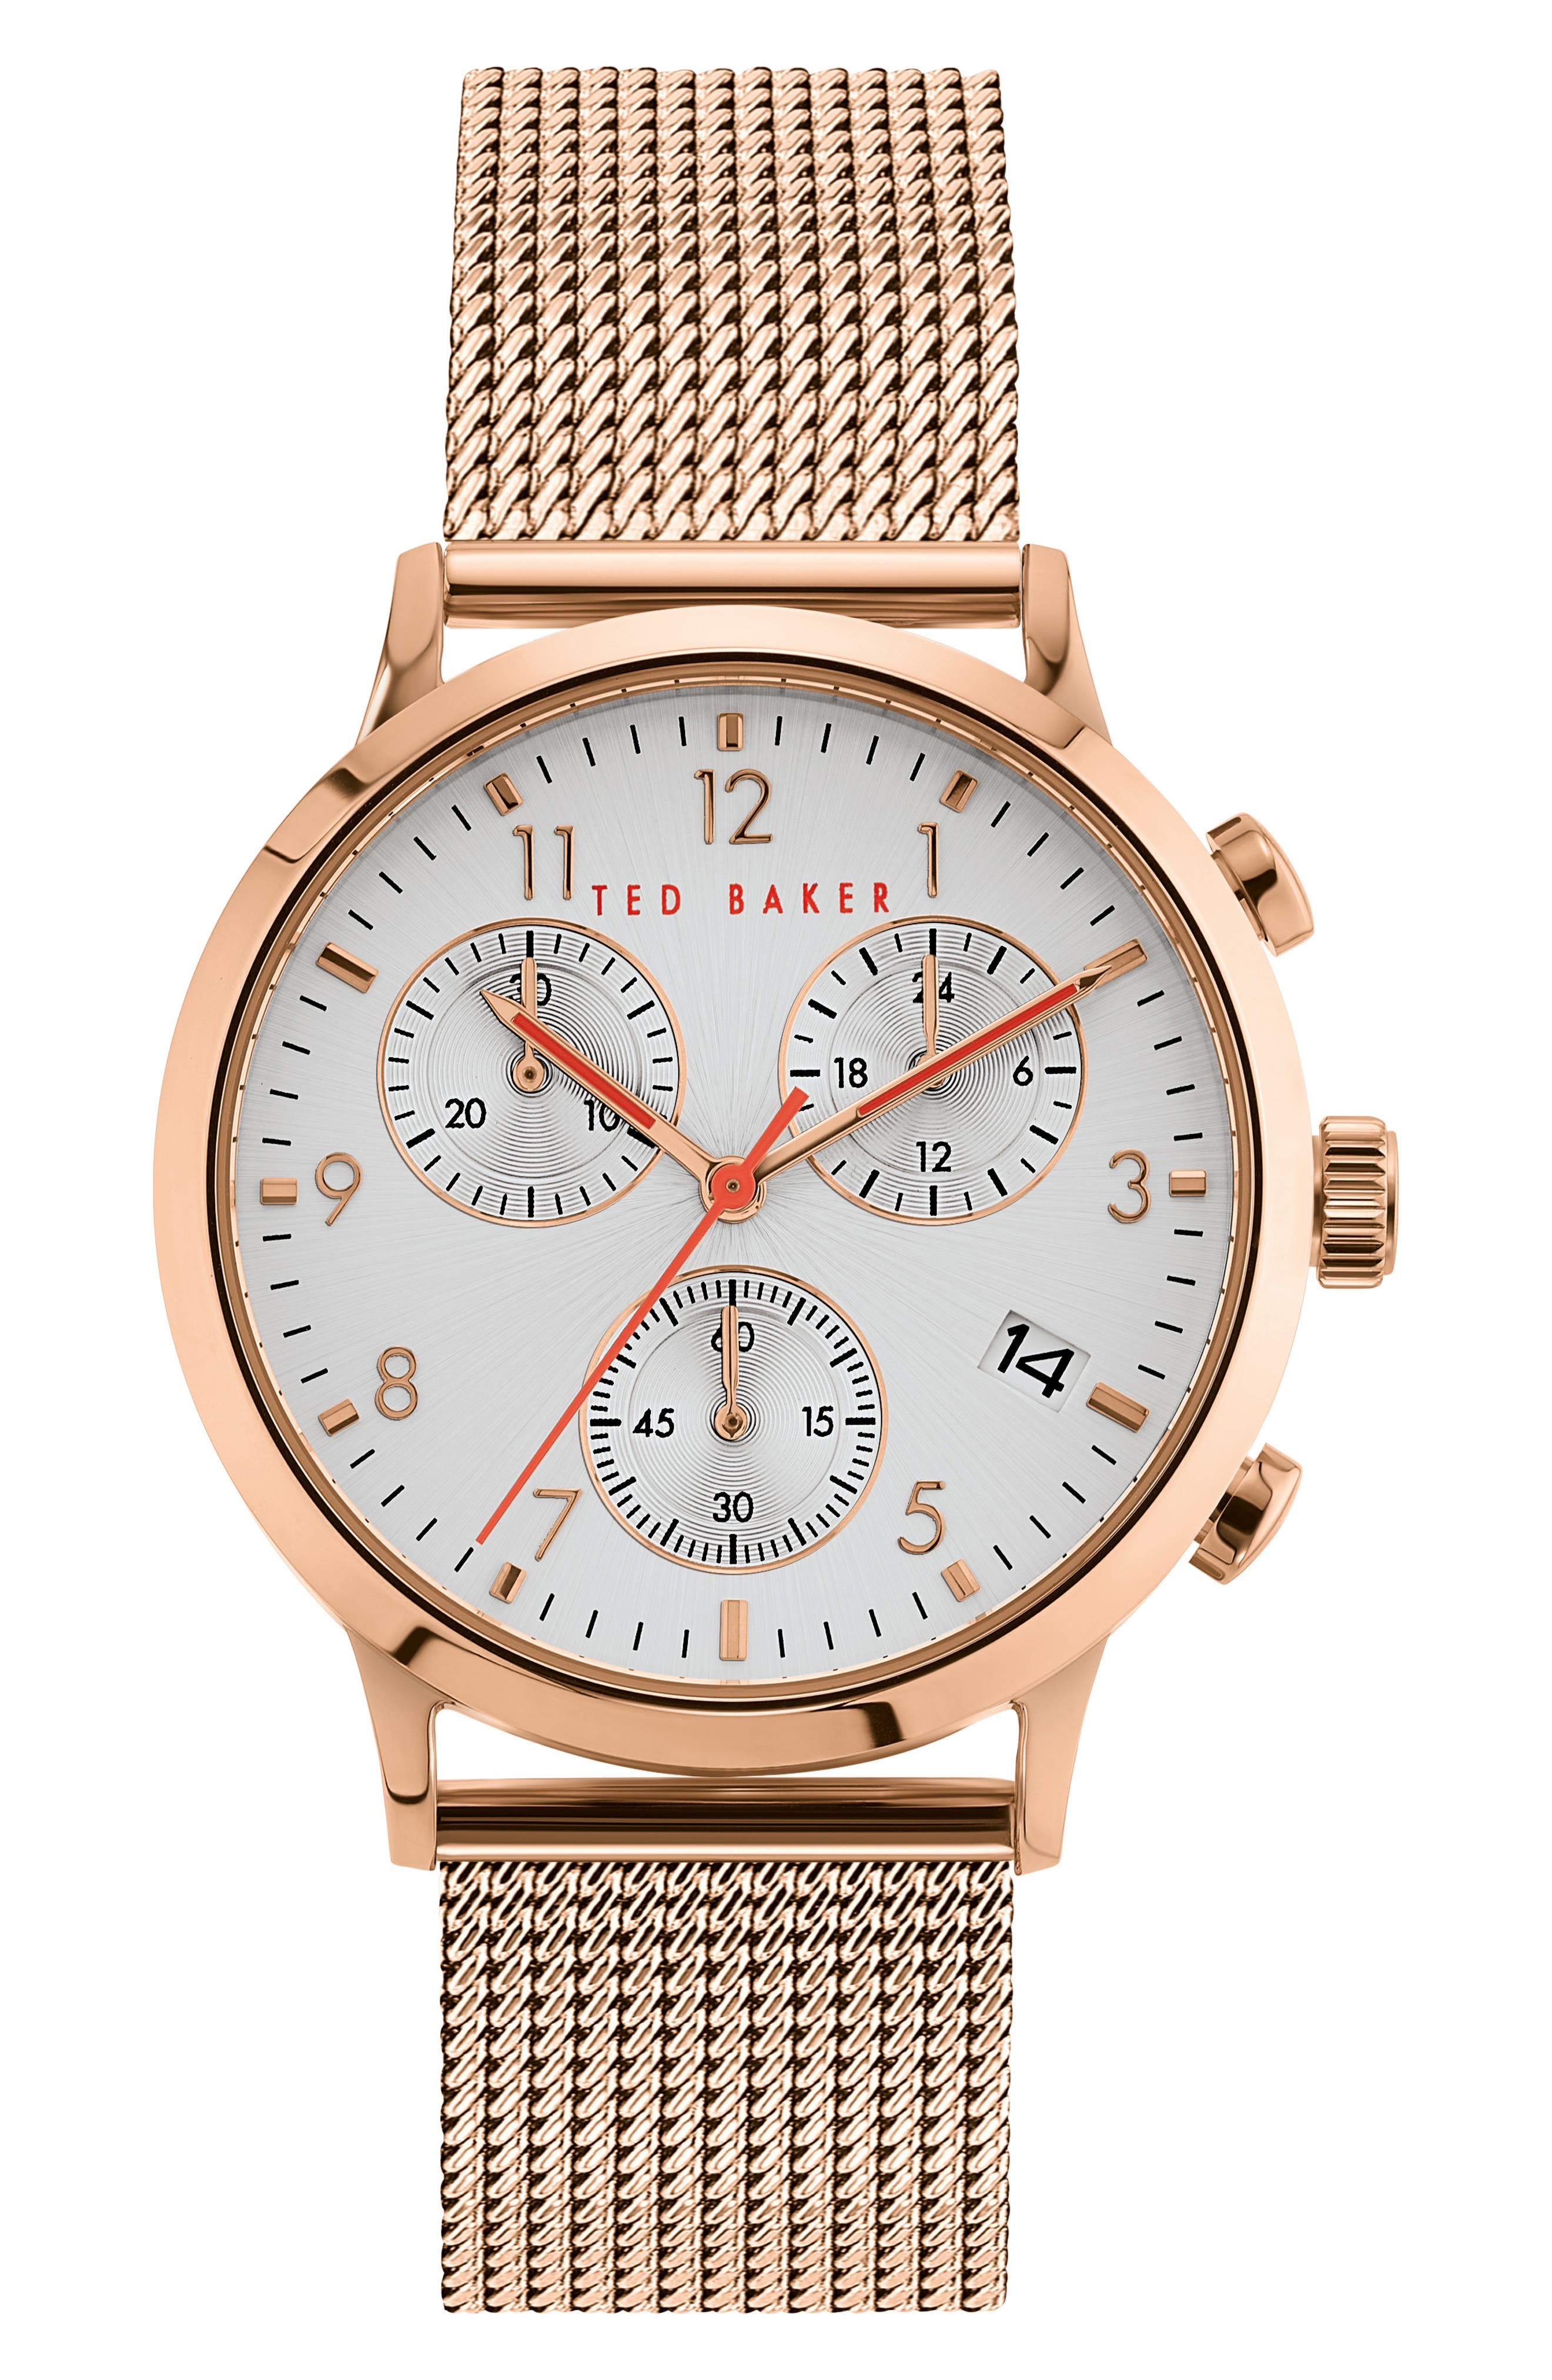 Image of Ted Baker London Men's Cosmop Mesh Bracelet Watch, 41mm